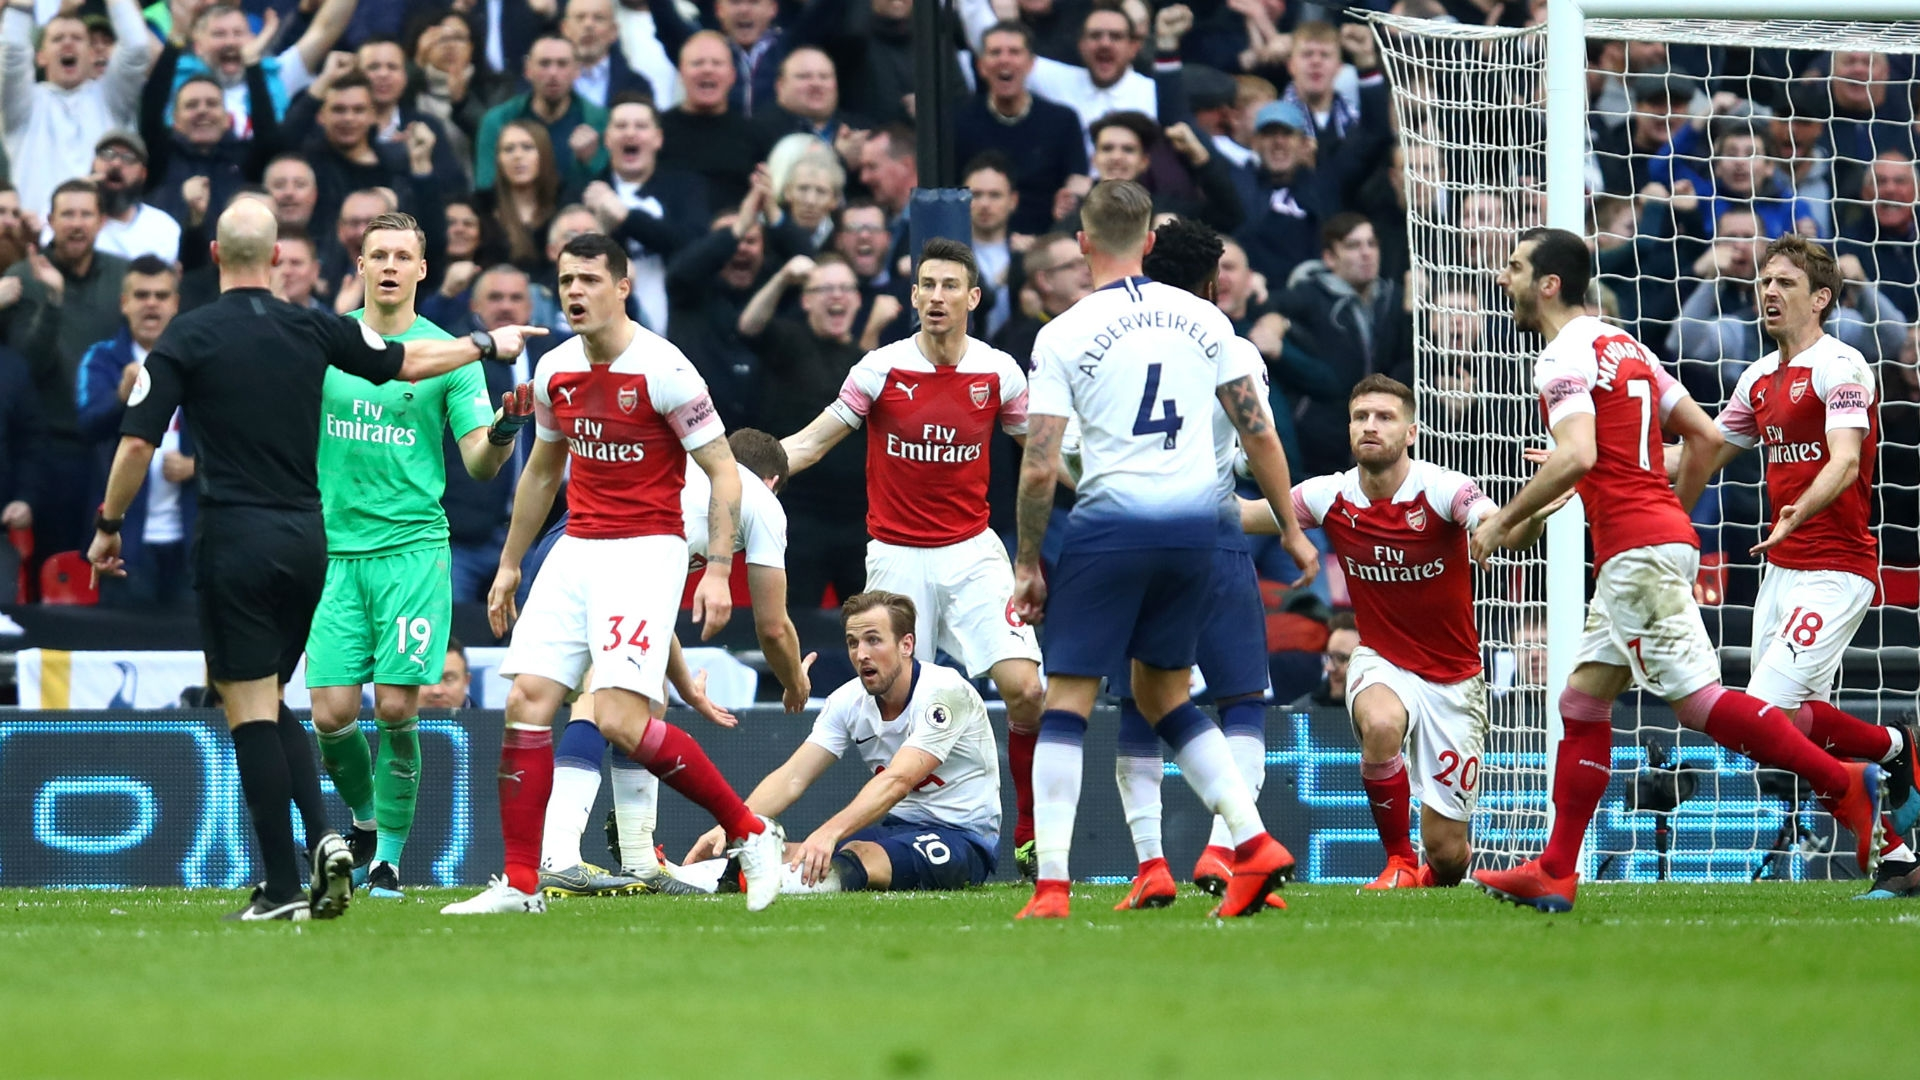 #NorthLondonDerby: An Ideal Test For Arsenal After Liverpool – Unai Emery